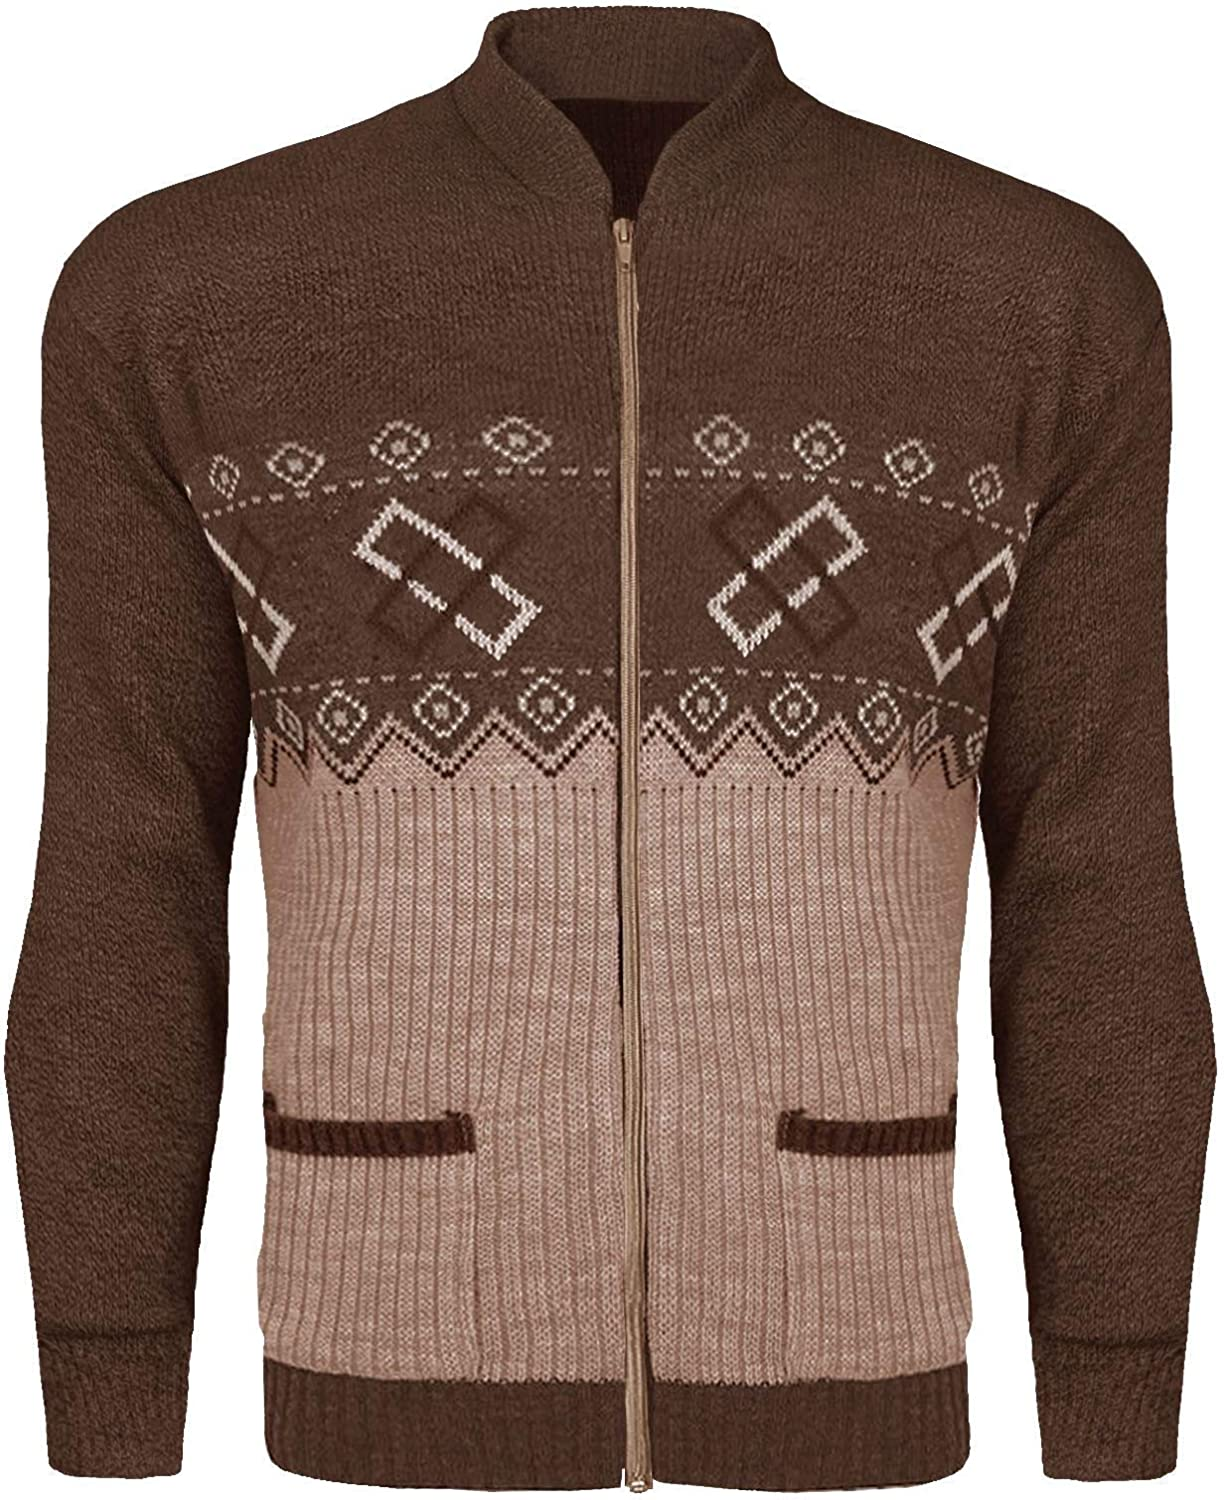 Mens Classic Zip UP Cardigan Argyle Knitwear Granddad Aztec Two Front Pockets Knitted TOP Long Sleeves Warm Winter Front Zipper Jumper